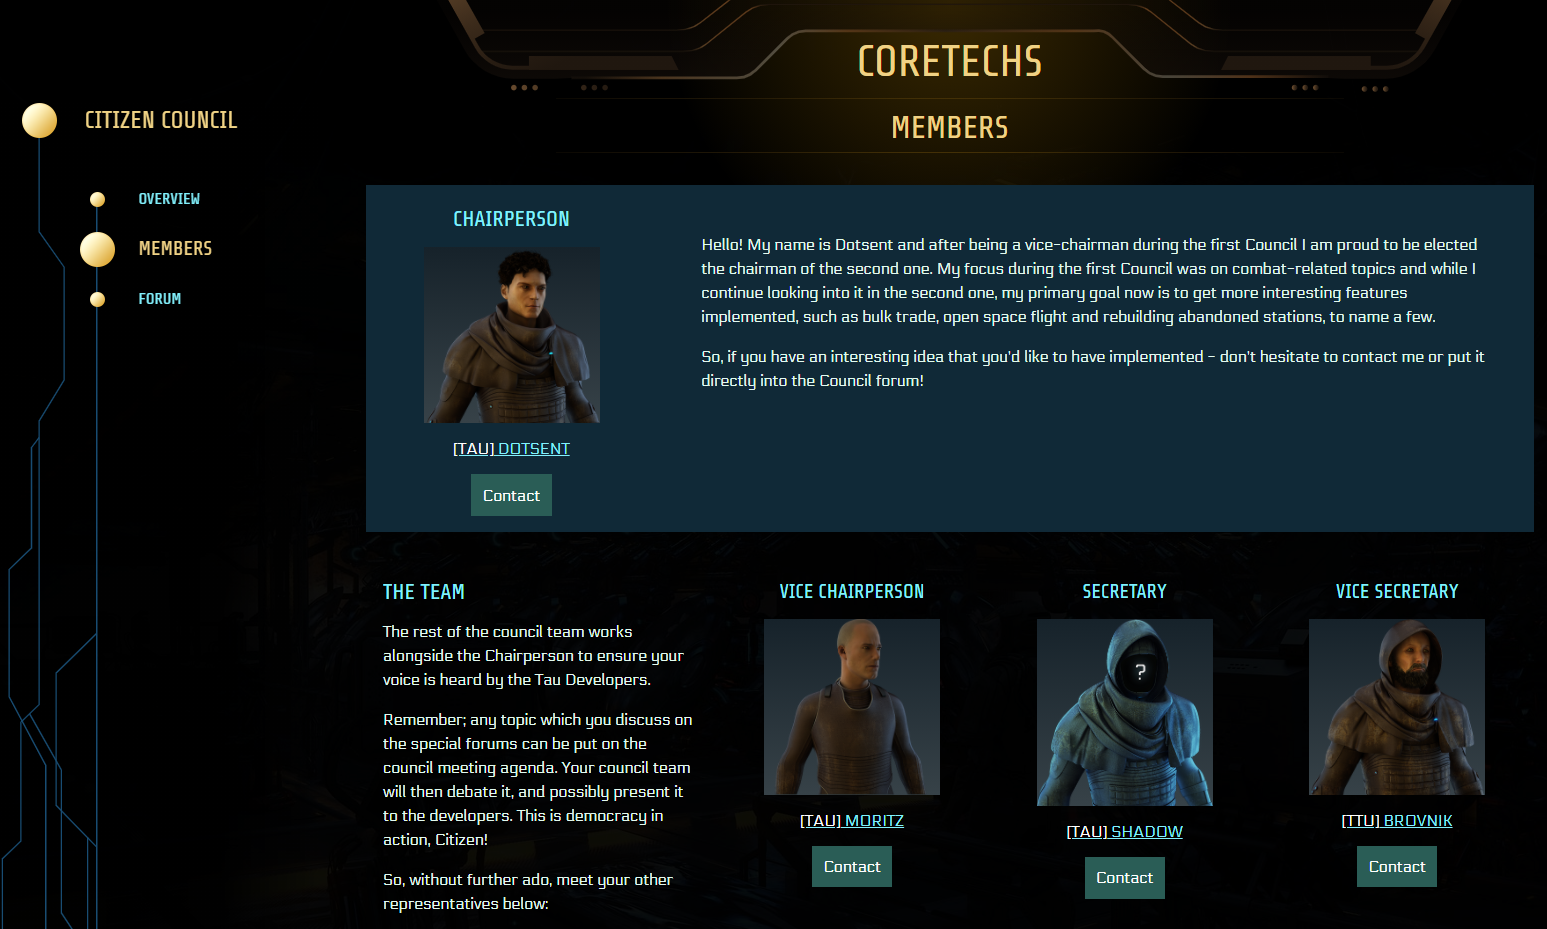 The Citizen Council page in the CORETECHS